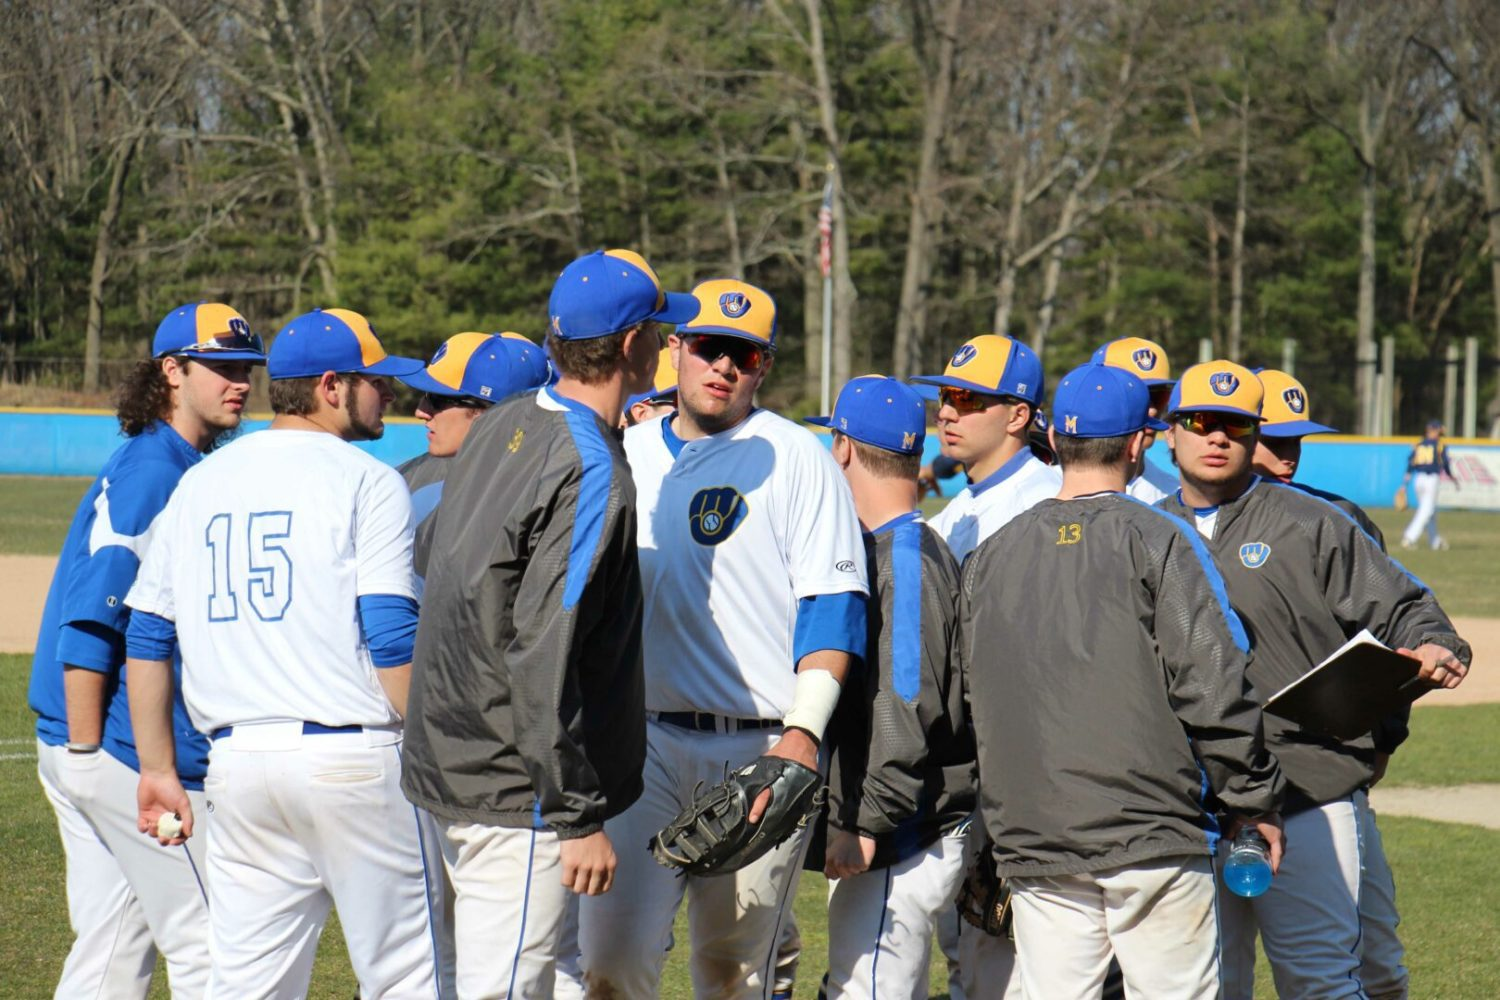 Muskegon Community College baseball team continues to struggle, drops two to GRCC